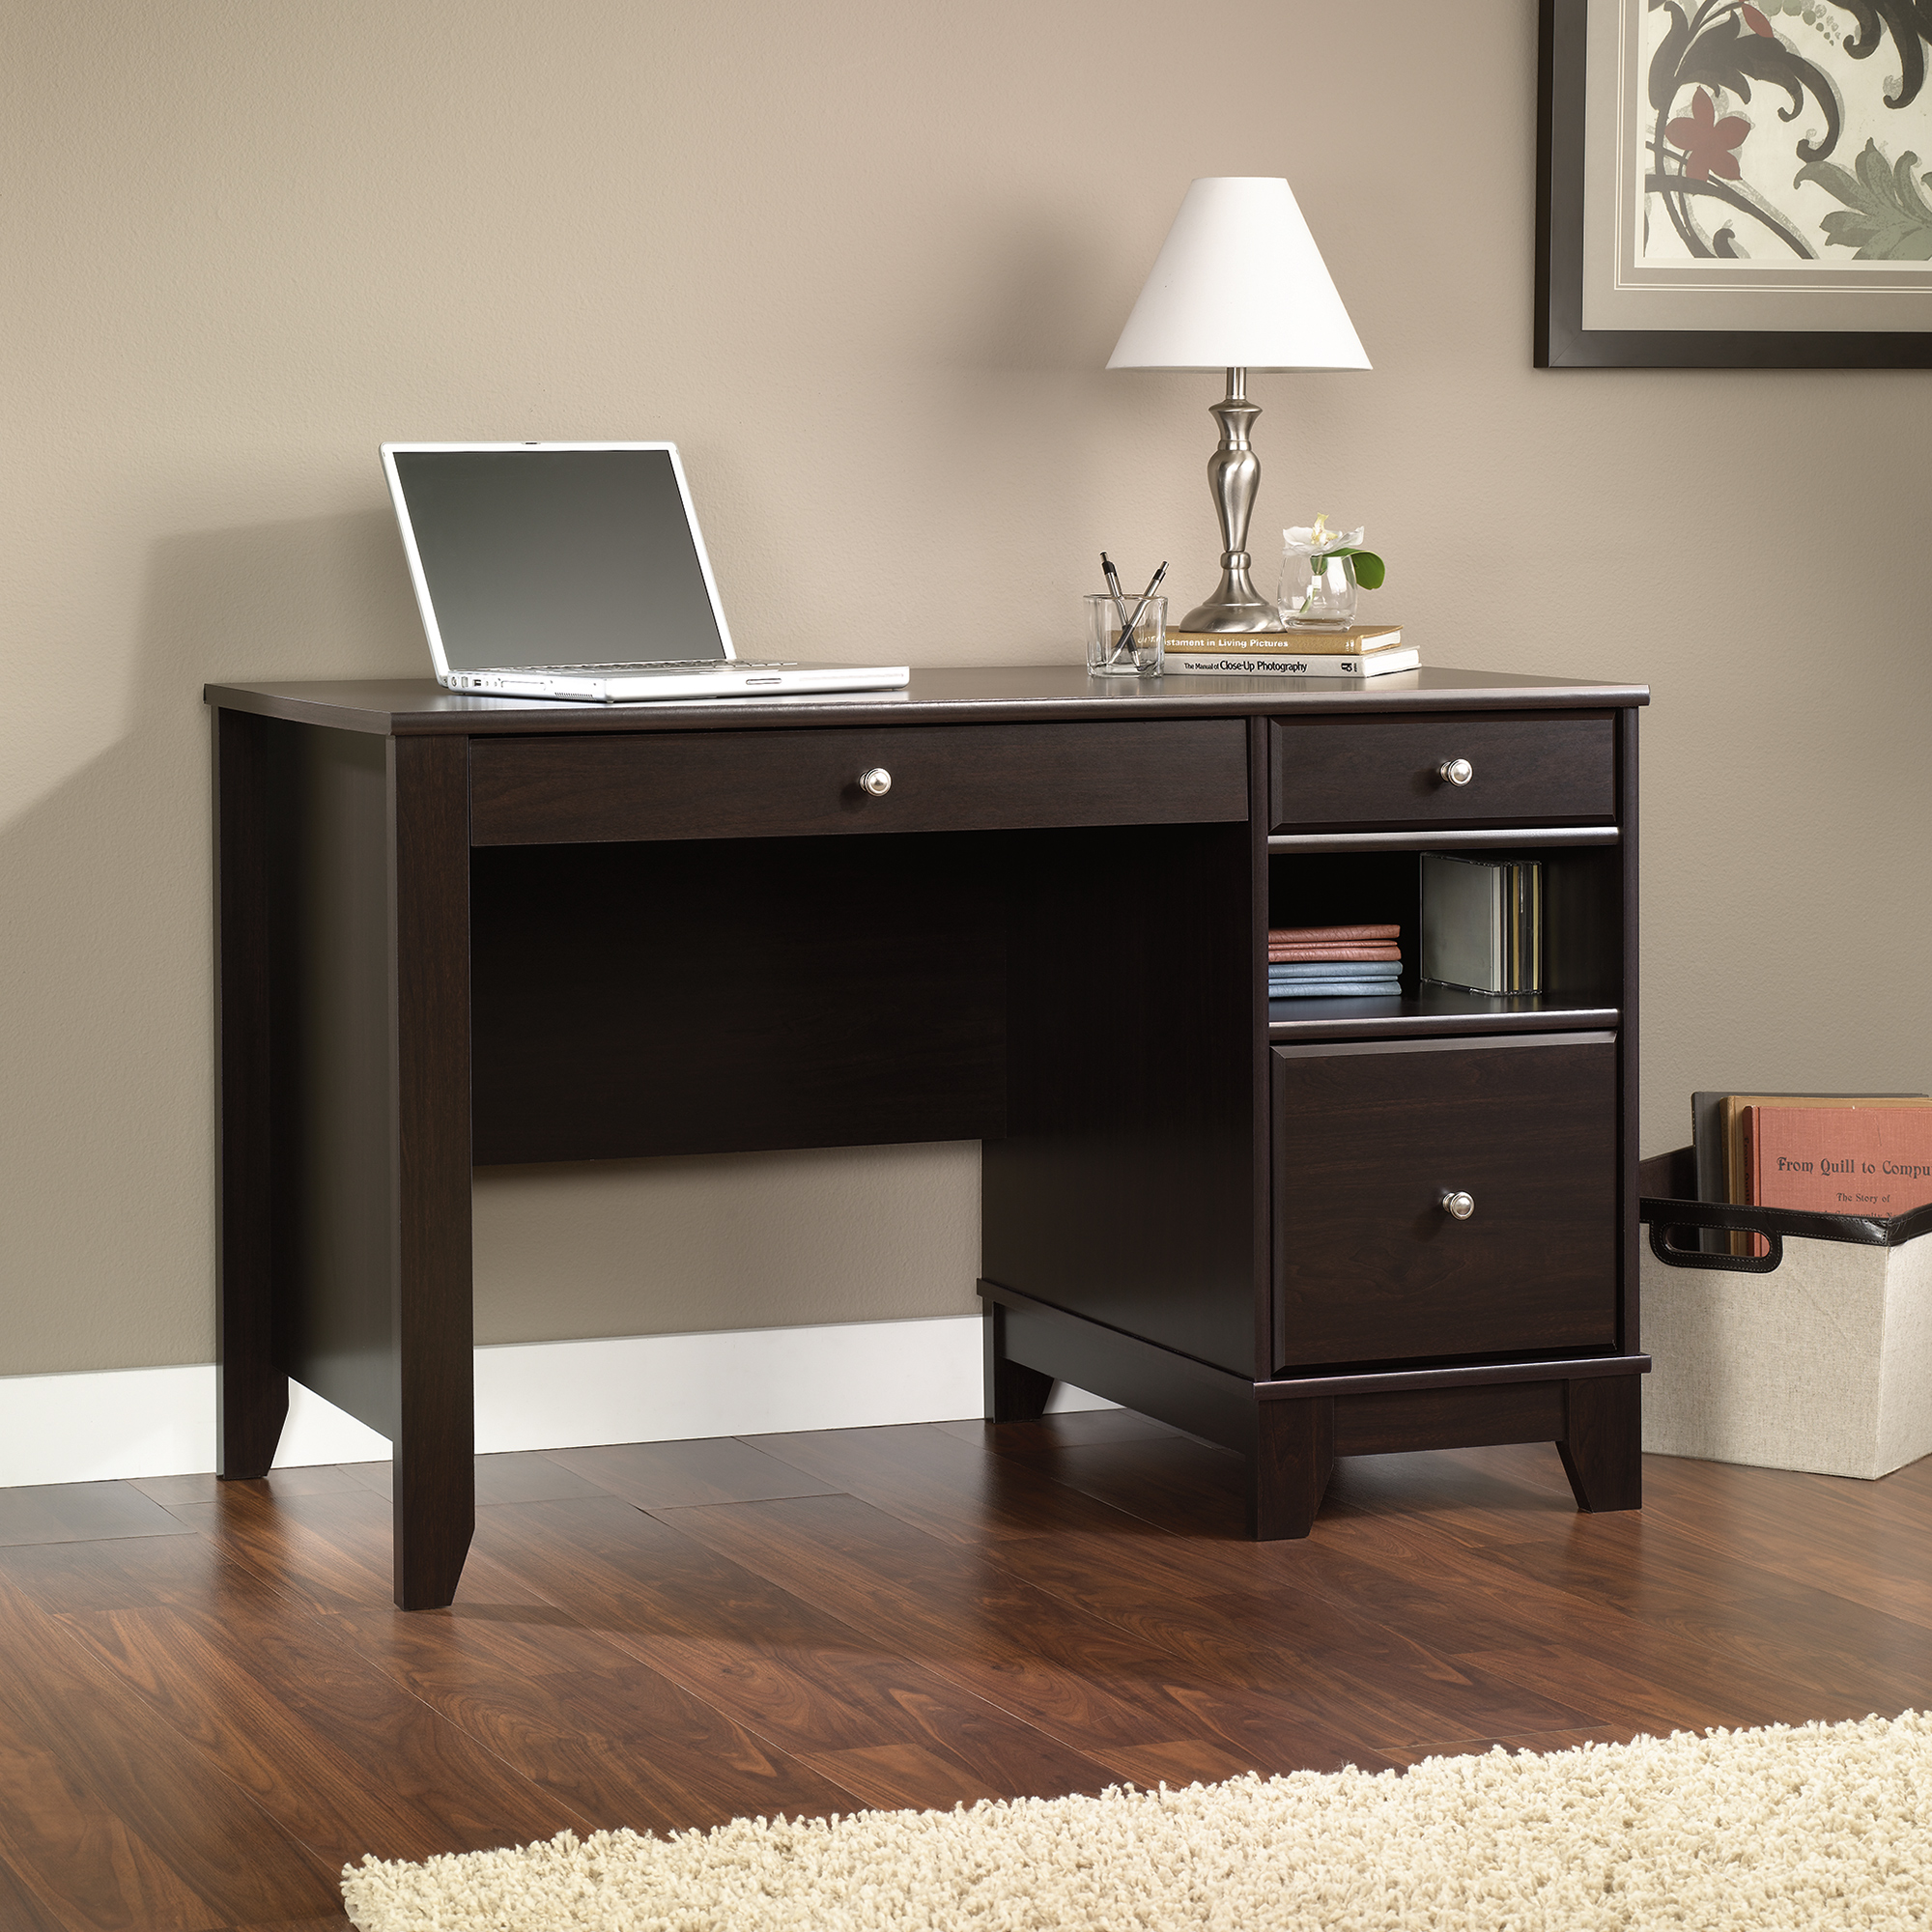 Sauder Harbor View | Sauder Computer Desks | Sauder Office Furniture